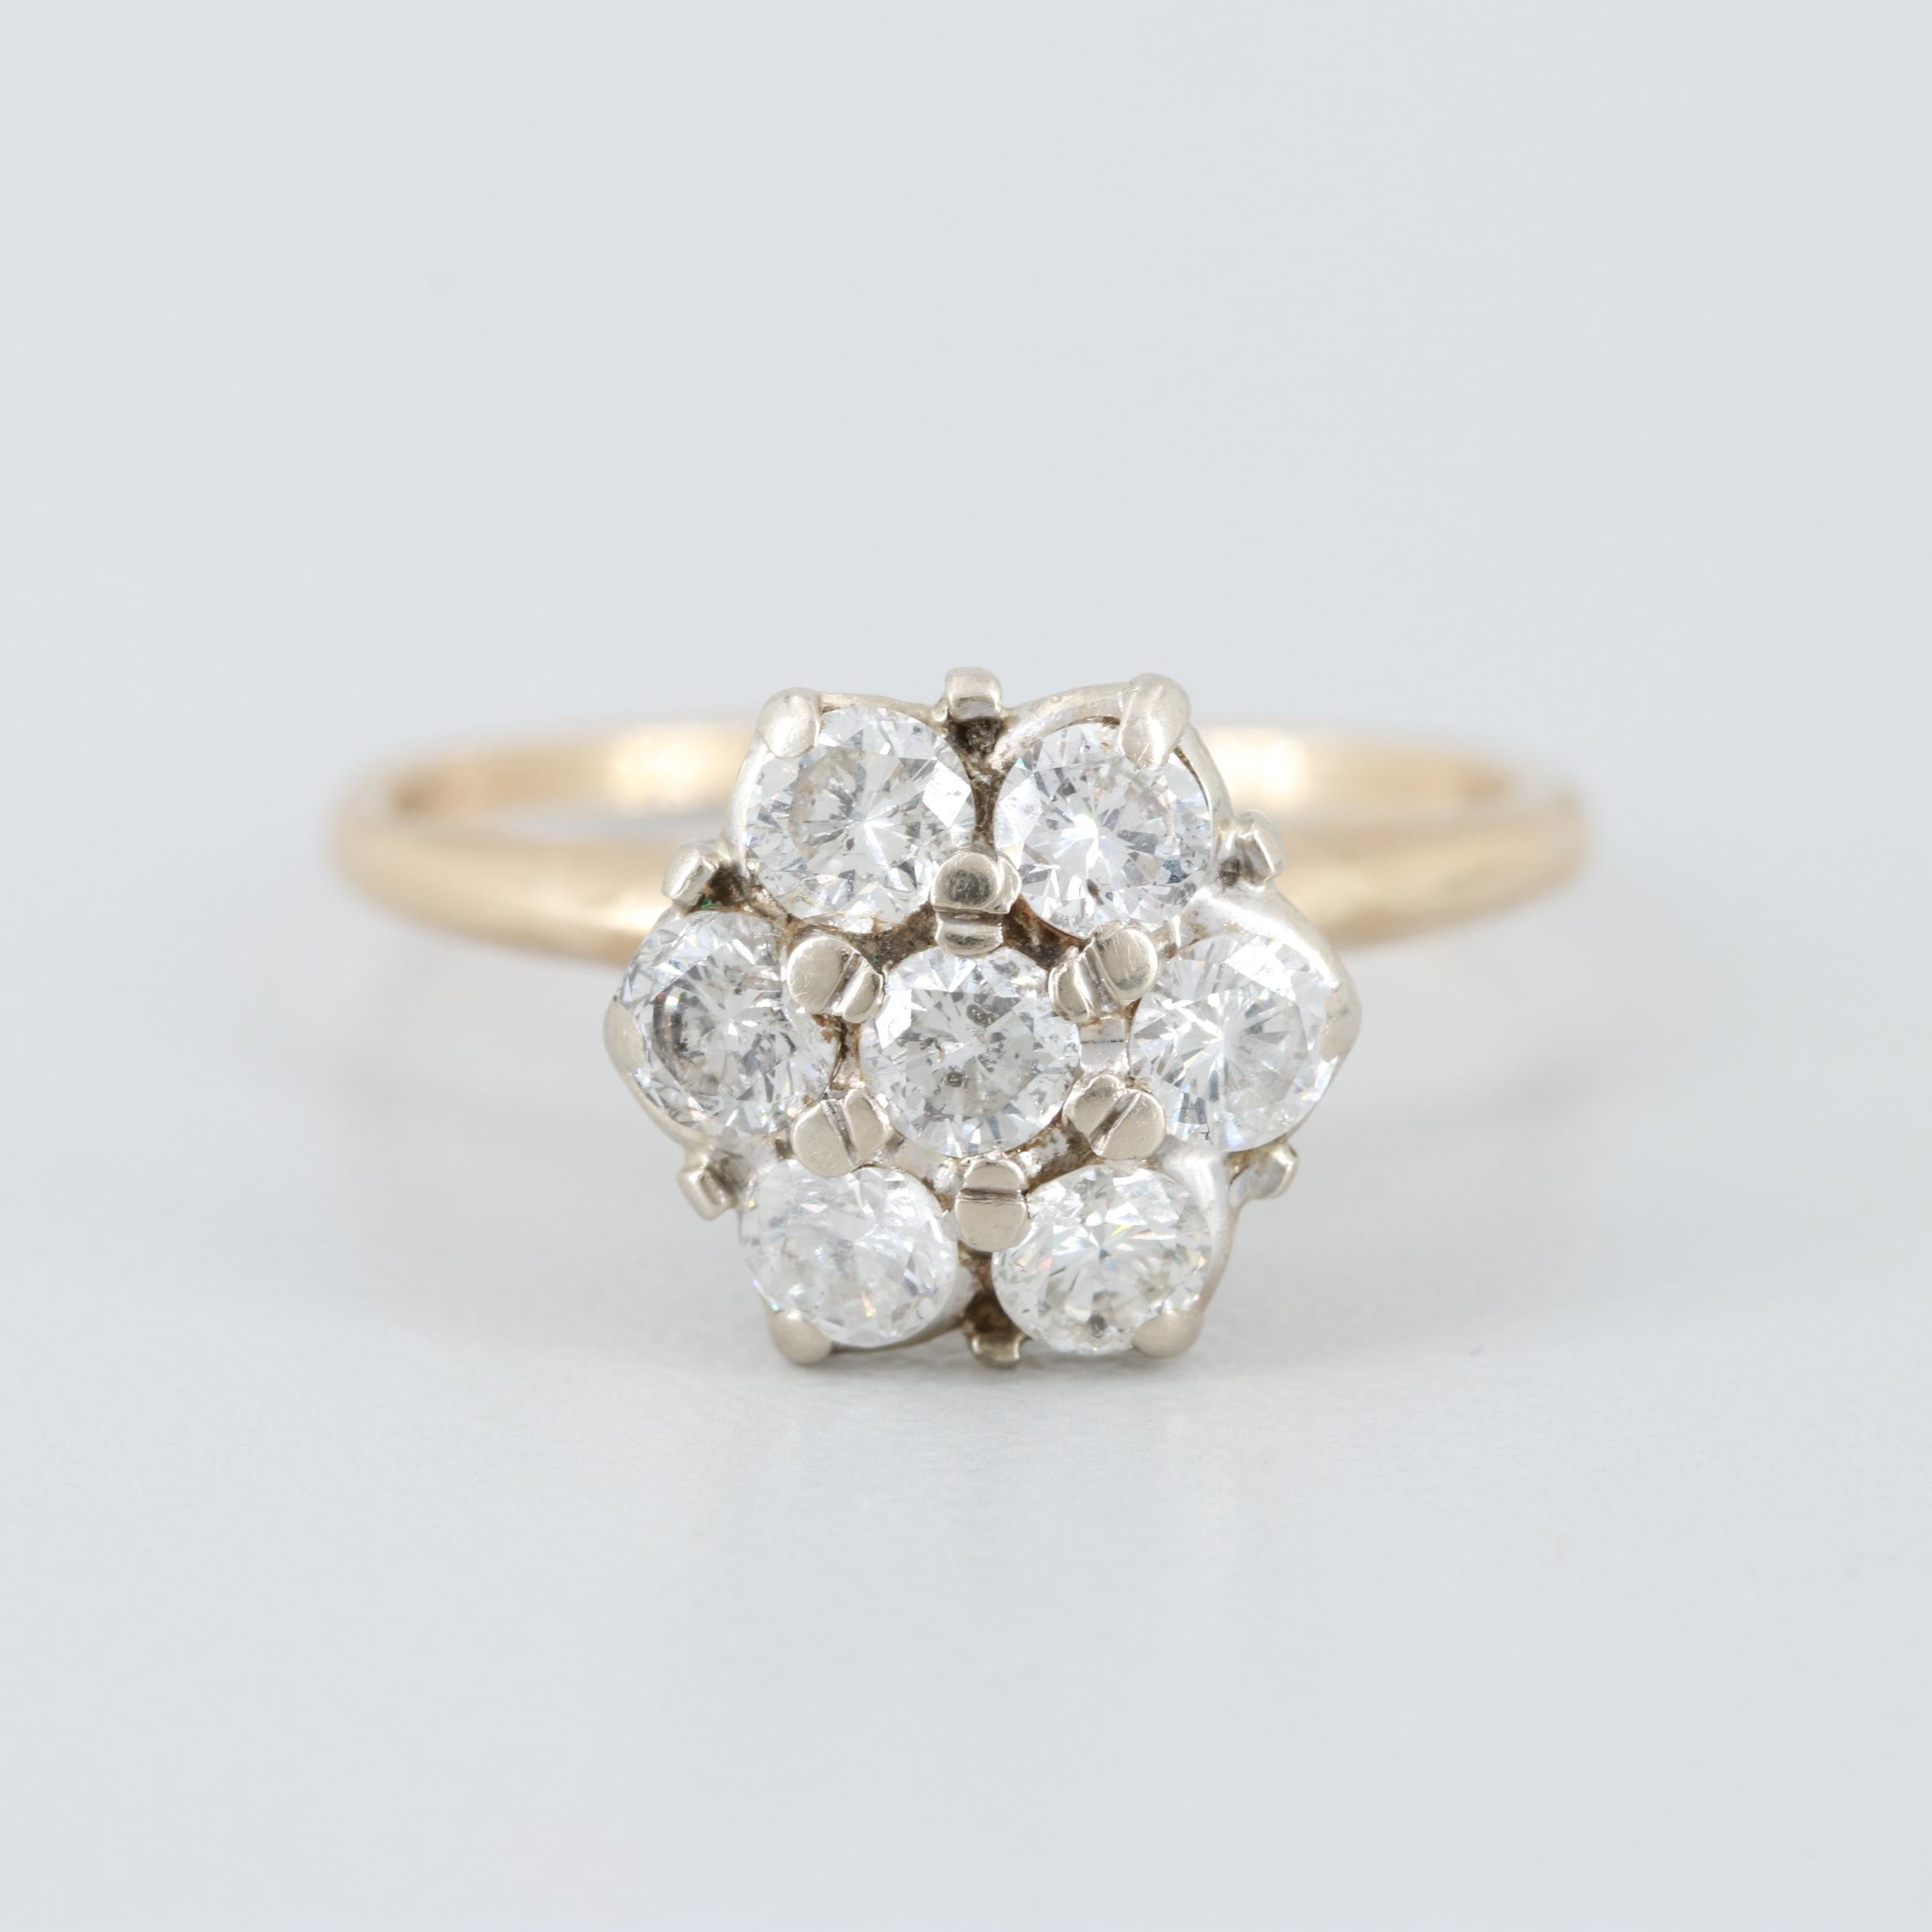 10K Yellow Gold Diamond Cluster Ring with 14K White Gold Setting